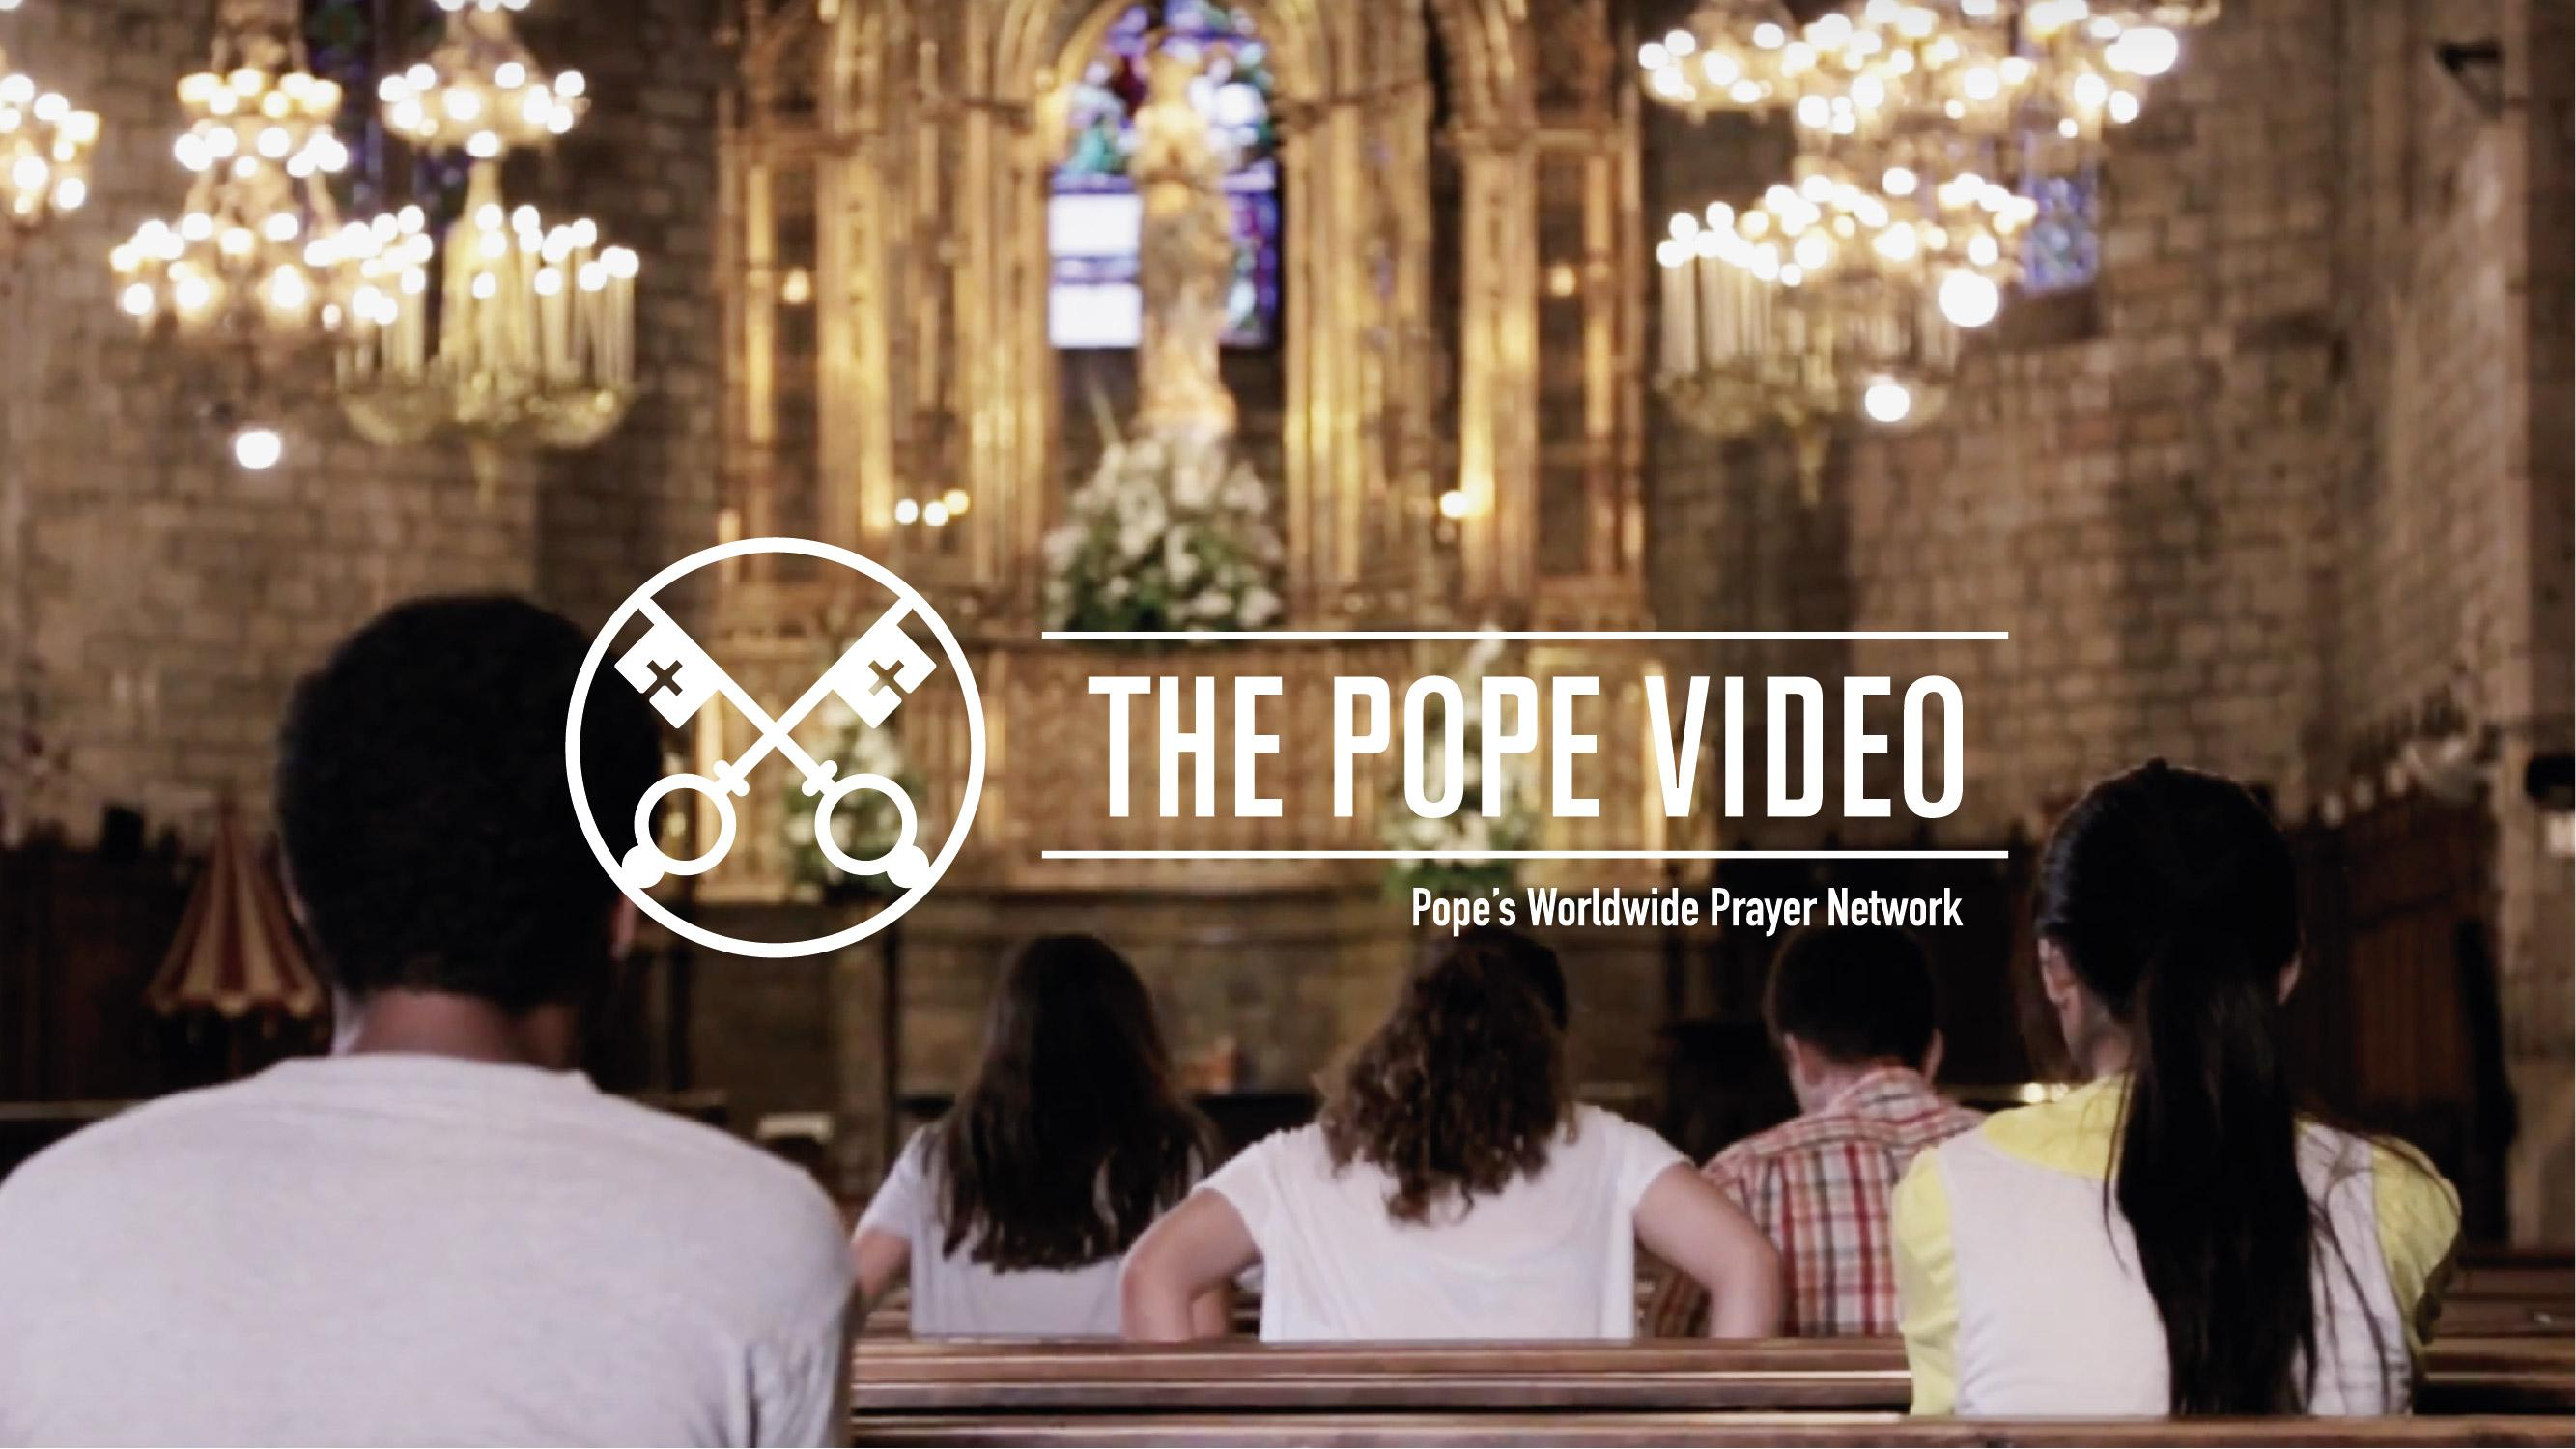 Official-Image-The-Pope-Video-09-SEP-2017-Parishes-at-the-service-of-mission-1-English